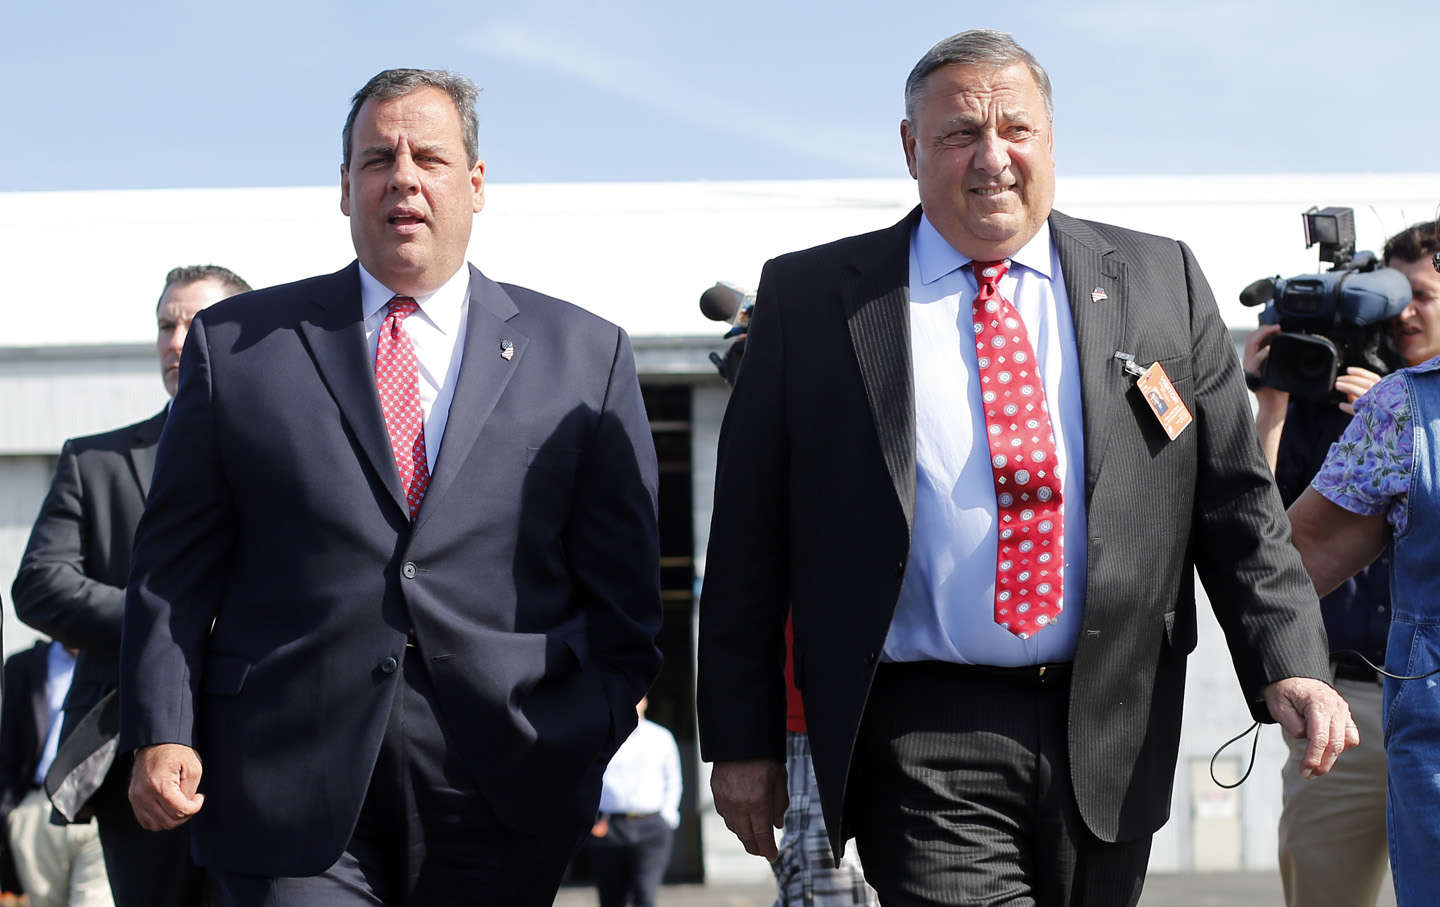 Chris Christie, Paul LePage